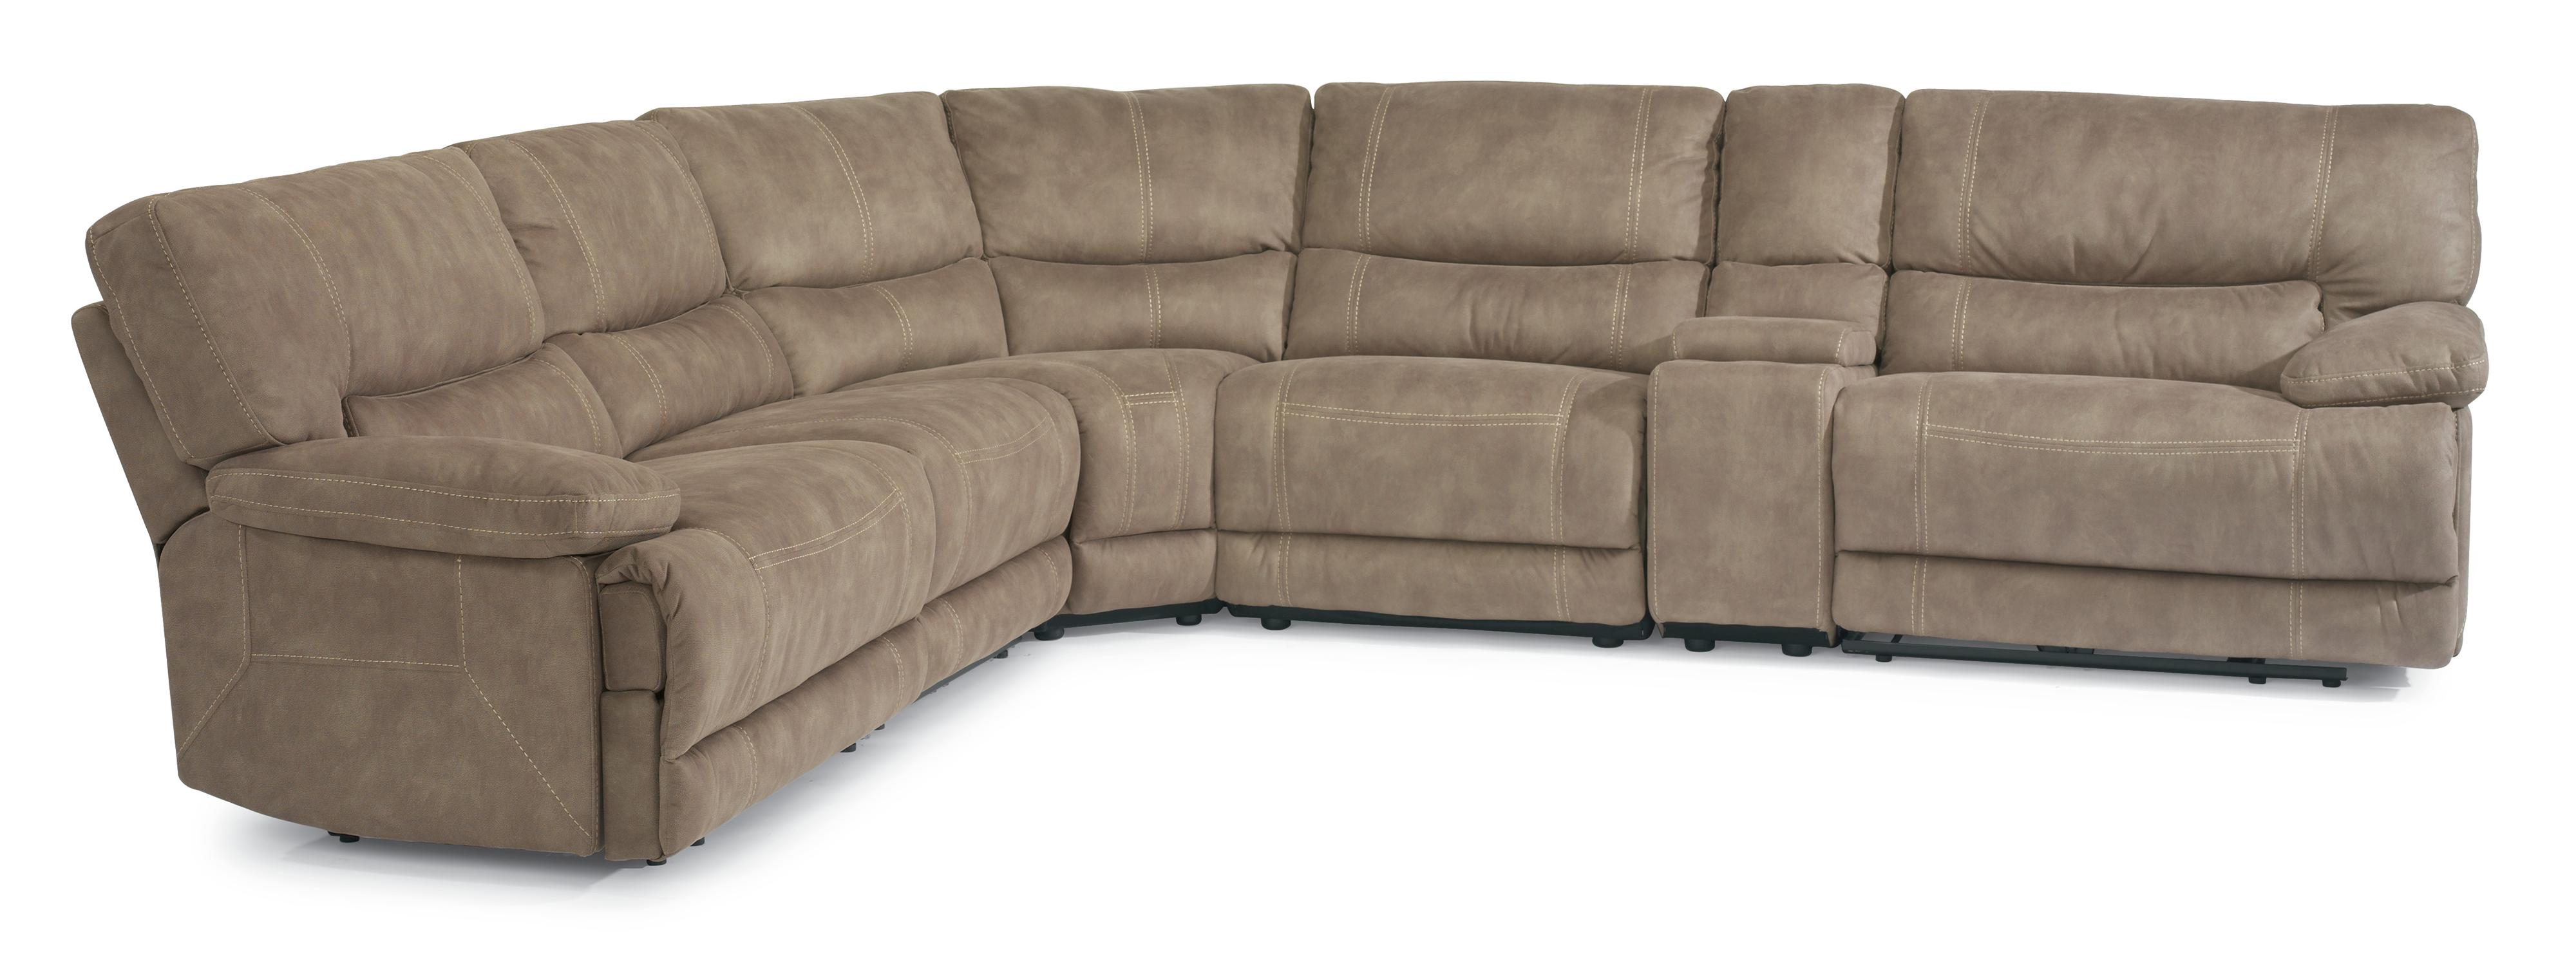 plush archer sofa bed price chaise sofas flexsteel latitudes delia reclining sectional with